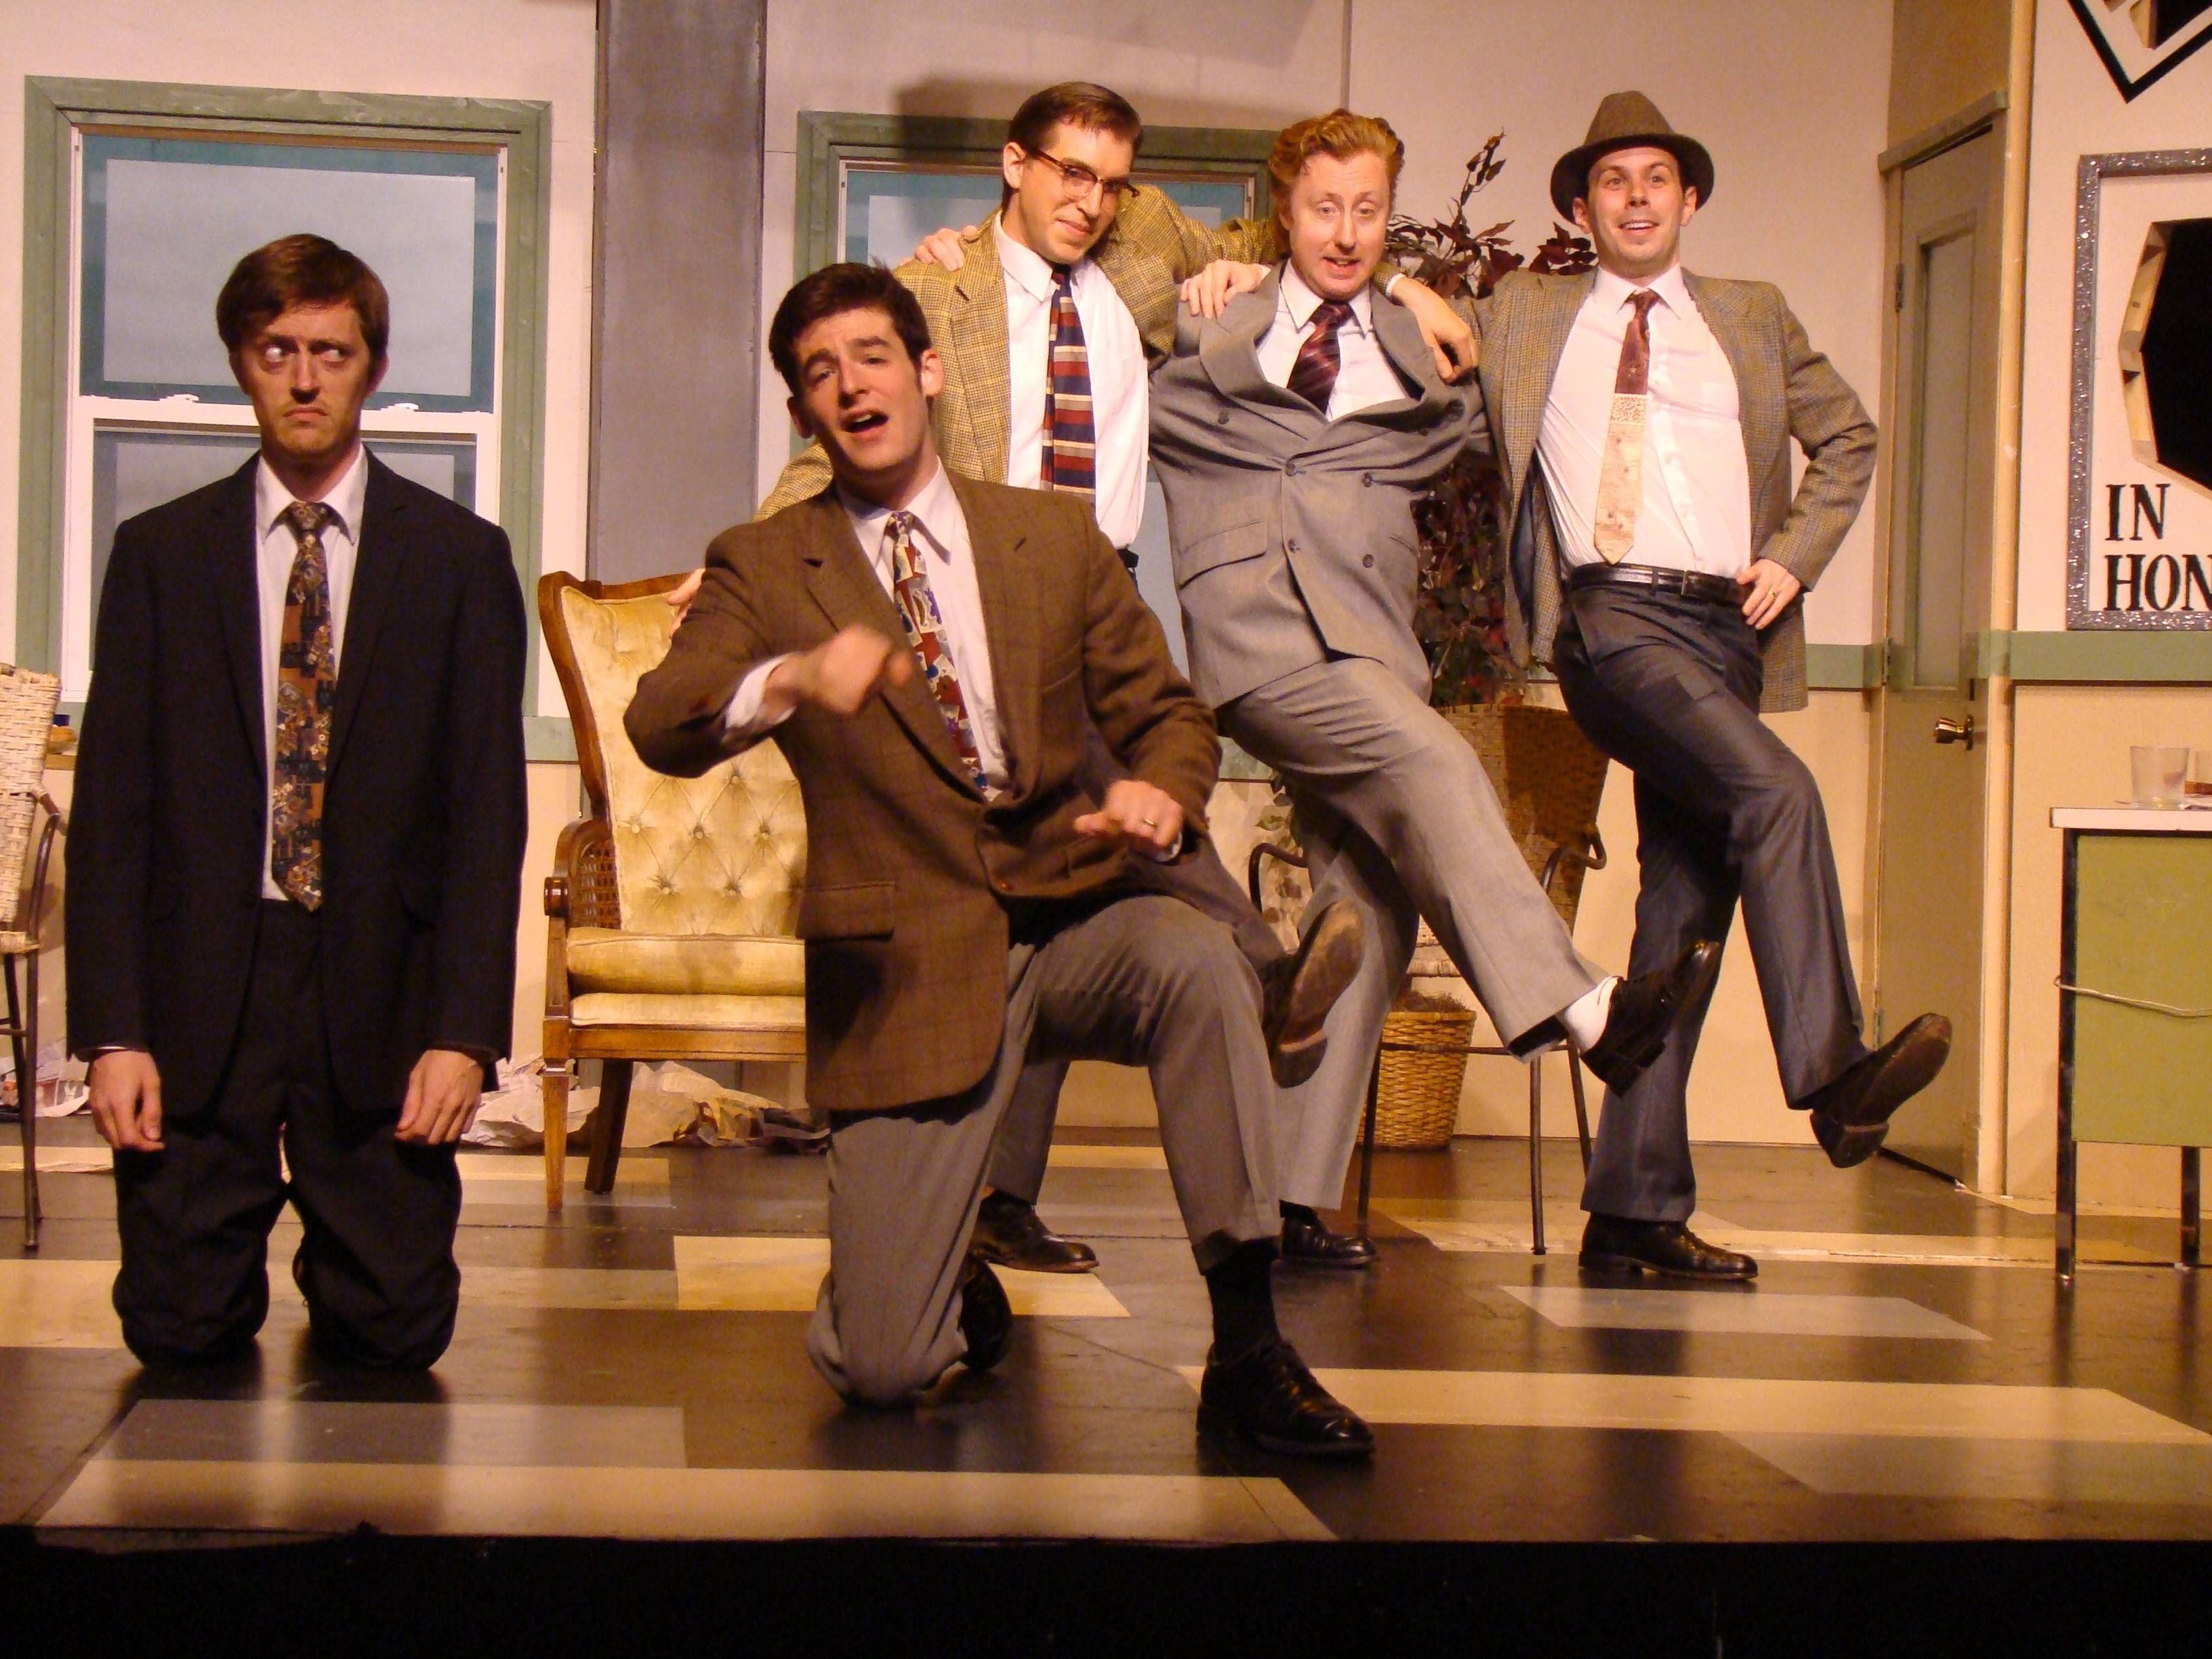 "TV star Max Prince (Michael Wood, left) is unsure about an interpolated Gershwin song in his Julius Caesar comedy sketch suggested by the writers Ira Stone (Charlie Wein), Kenny Franks (Scott Edward Mills), Val Slotsky (Andrew J. Pond) and Brian Doyle (Alex Levin) in Eclectic Full Contact Theatre's Chicago production of Neil Simon's 1993 Broadway comedy ""Laughter on the 23rd Floor,"" which has been remounted and restaged for the Metropolis Performing Arts Centre in Arlington Heights."